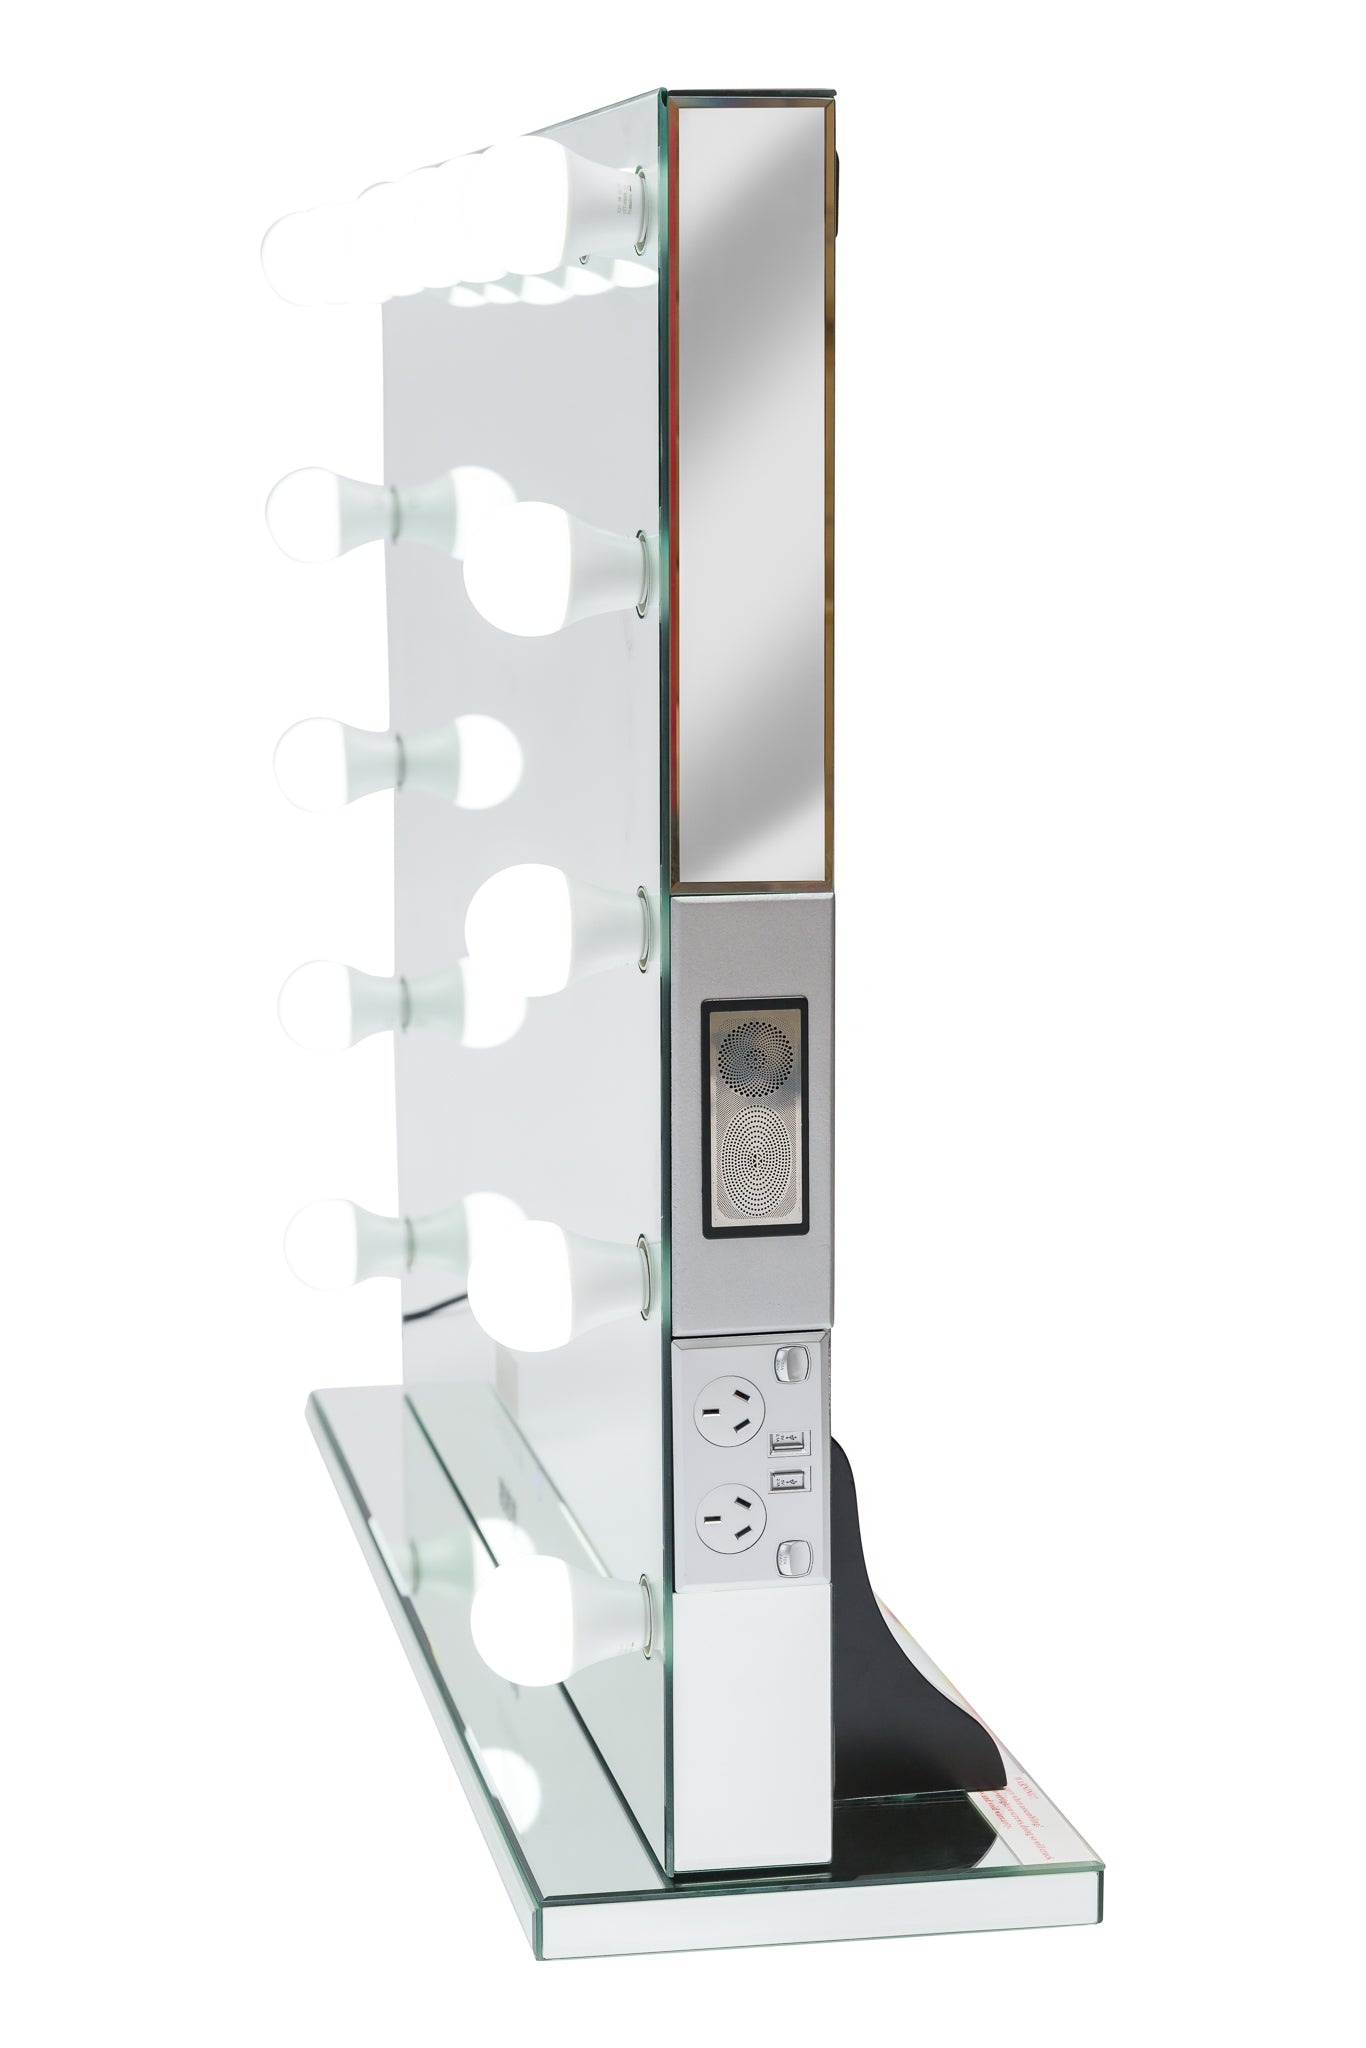 Hollywood Mirror HUGE SIZE XXXL with Bluetooth Speakers, Sensor Dimmer, USB,Power Points